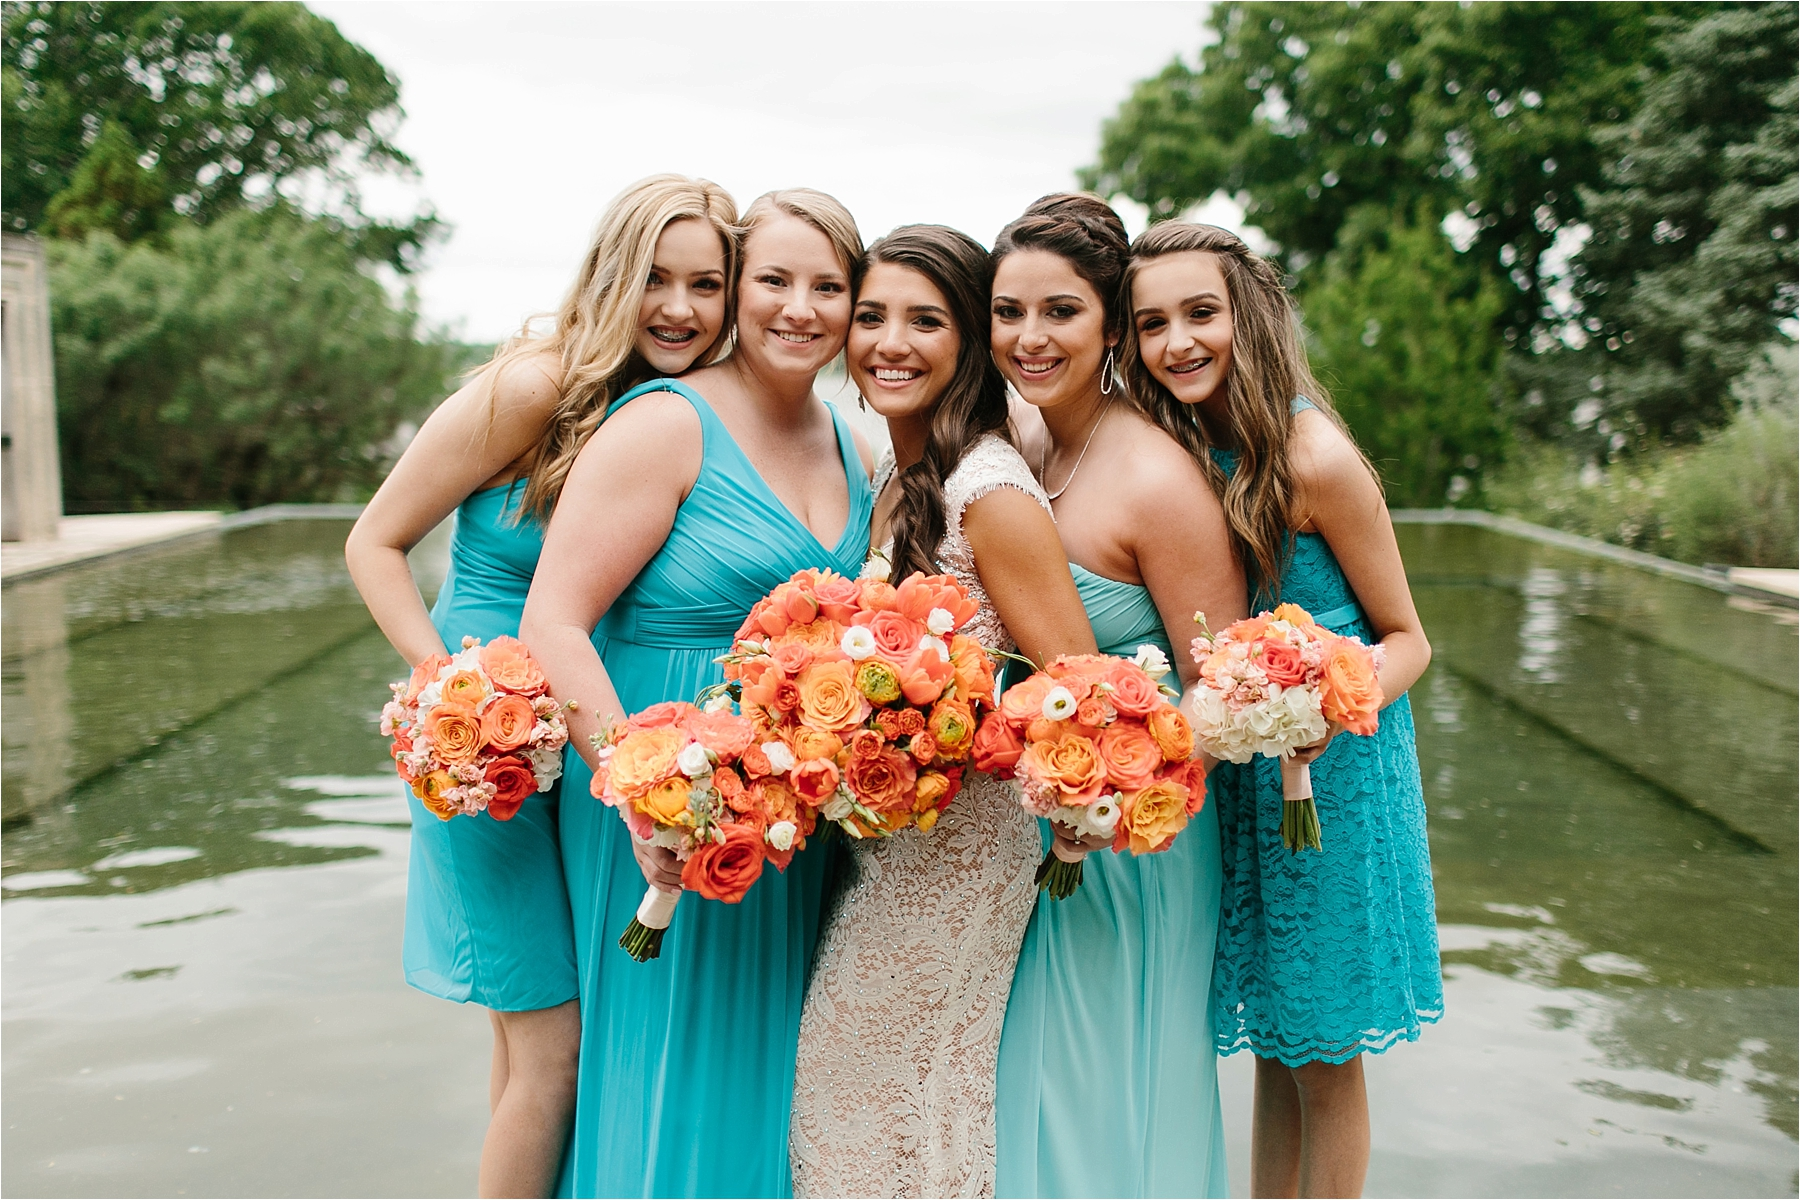 Devyn + Caden __ a Dallas Arboretum Garden Style Wedding by North Texas Wedding Photographer Rachel Meagan Photography __ 060